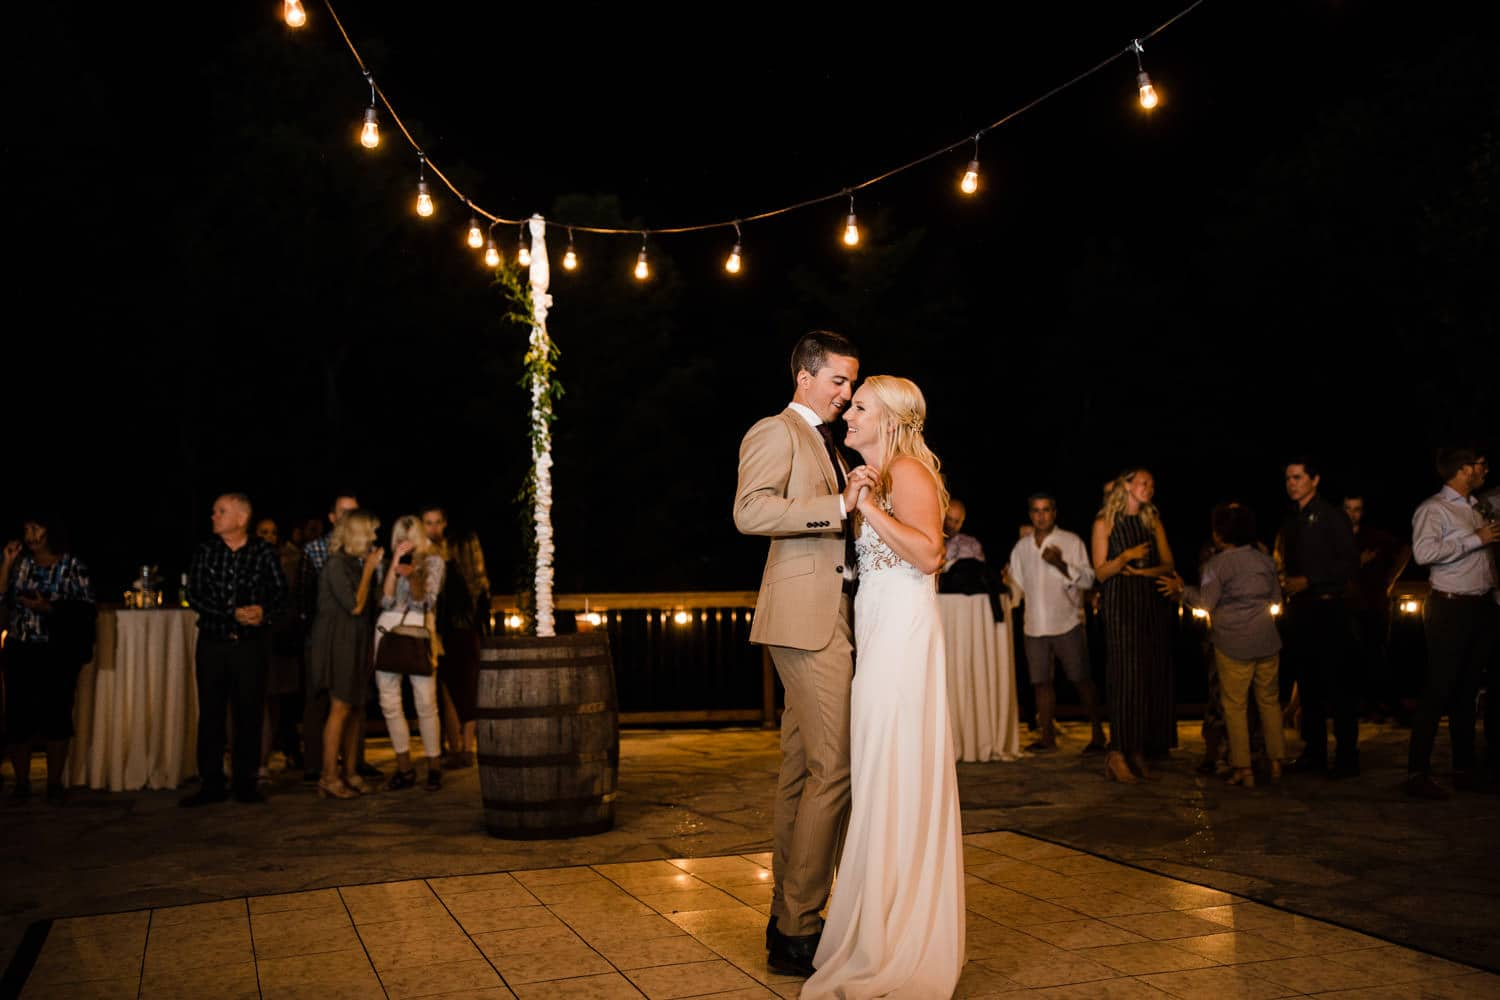 bride and groom first dance twinkle lights at outdoor wedding